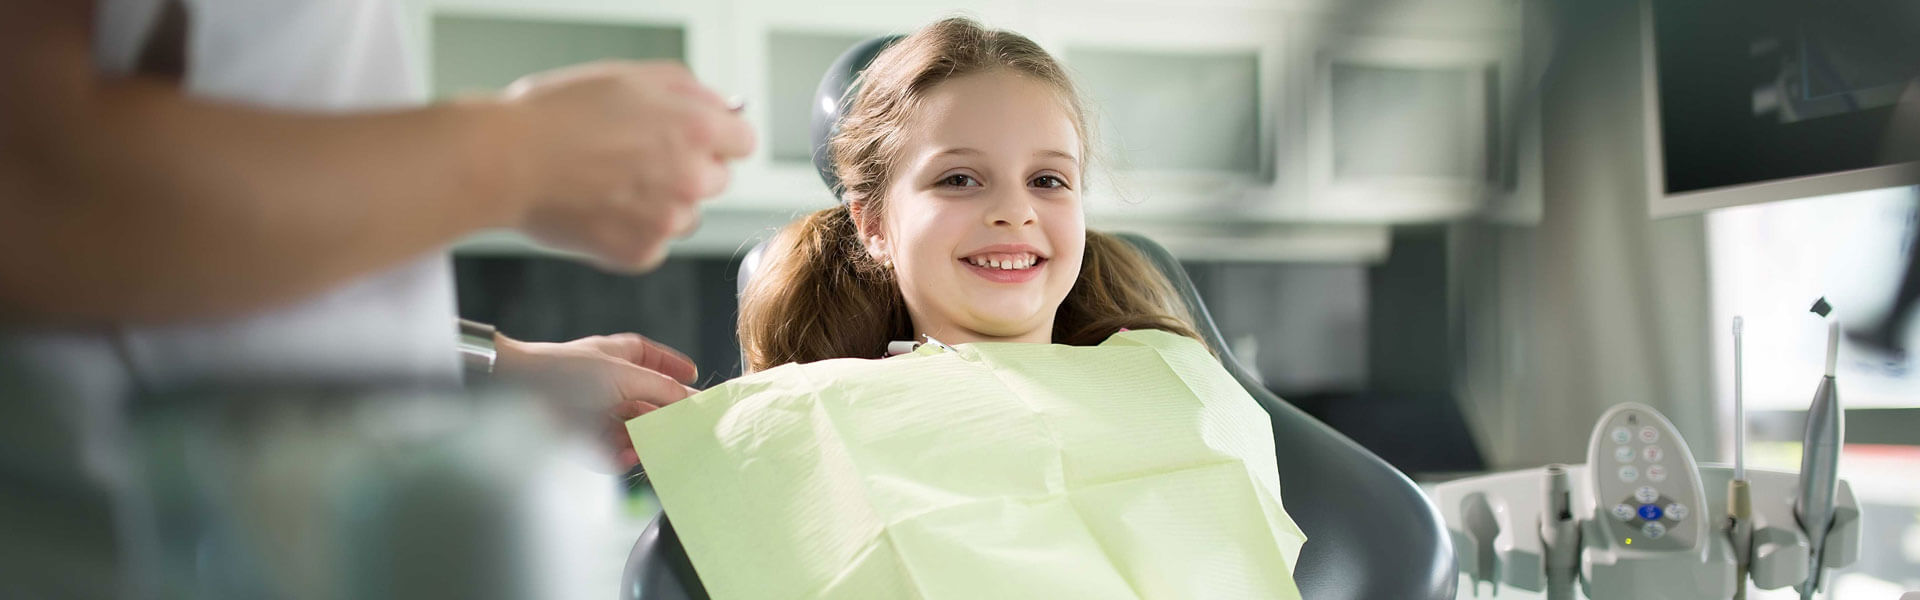 Types of Services to Expect in Pediatric Dentistry